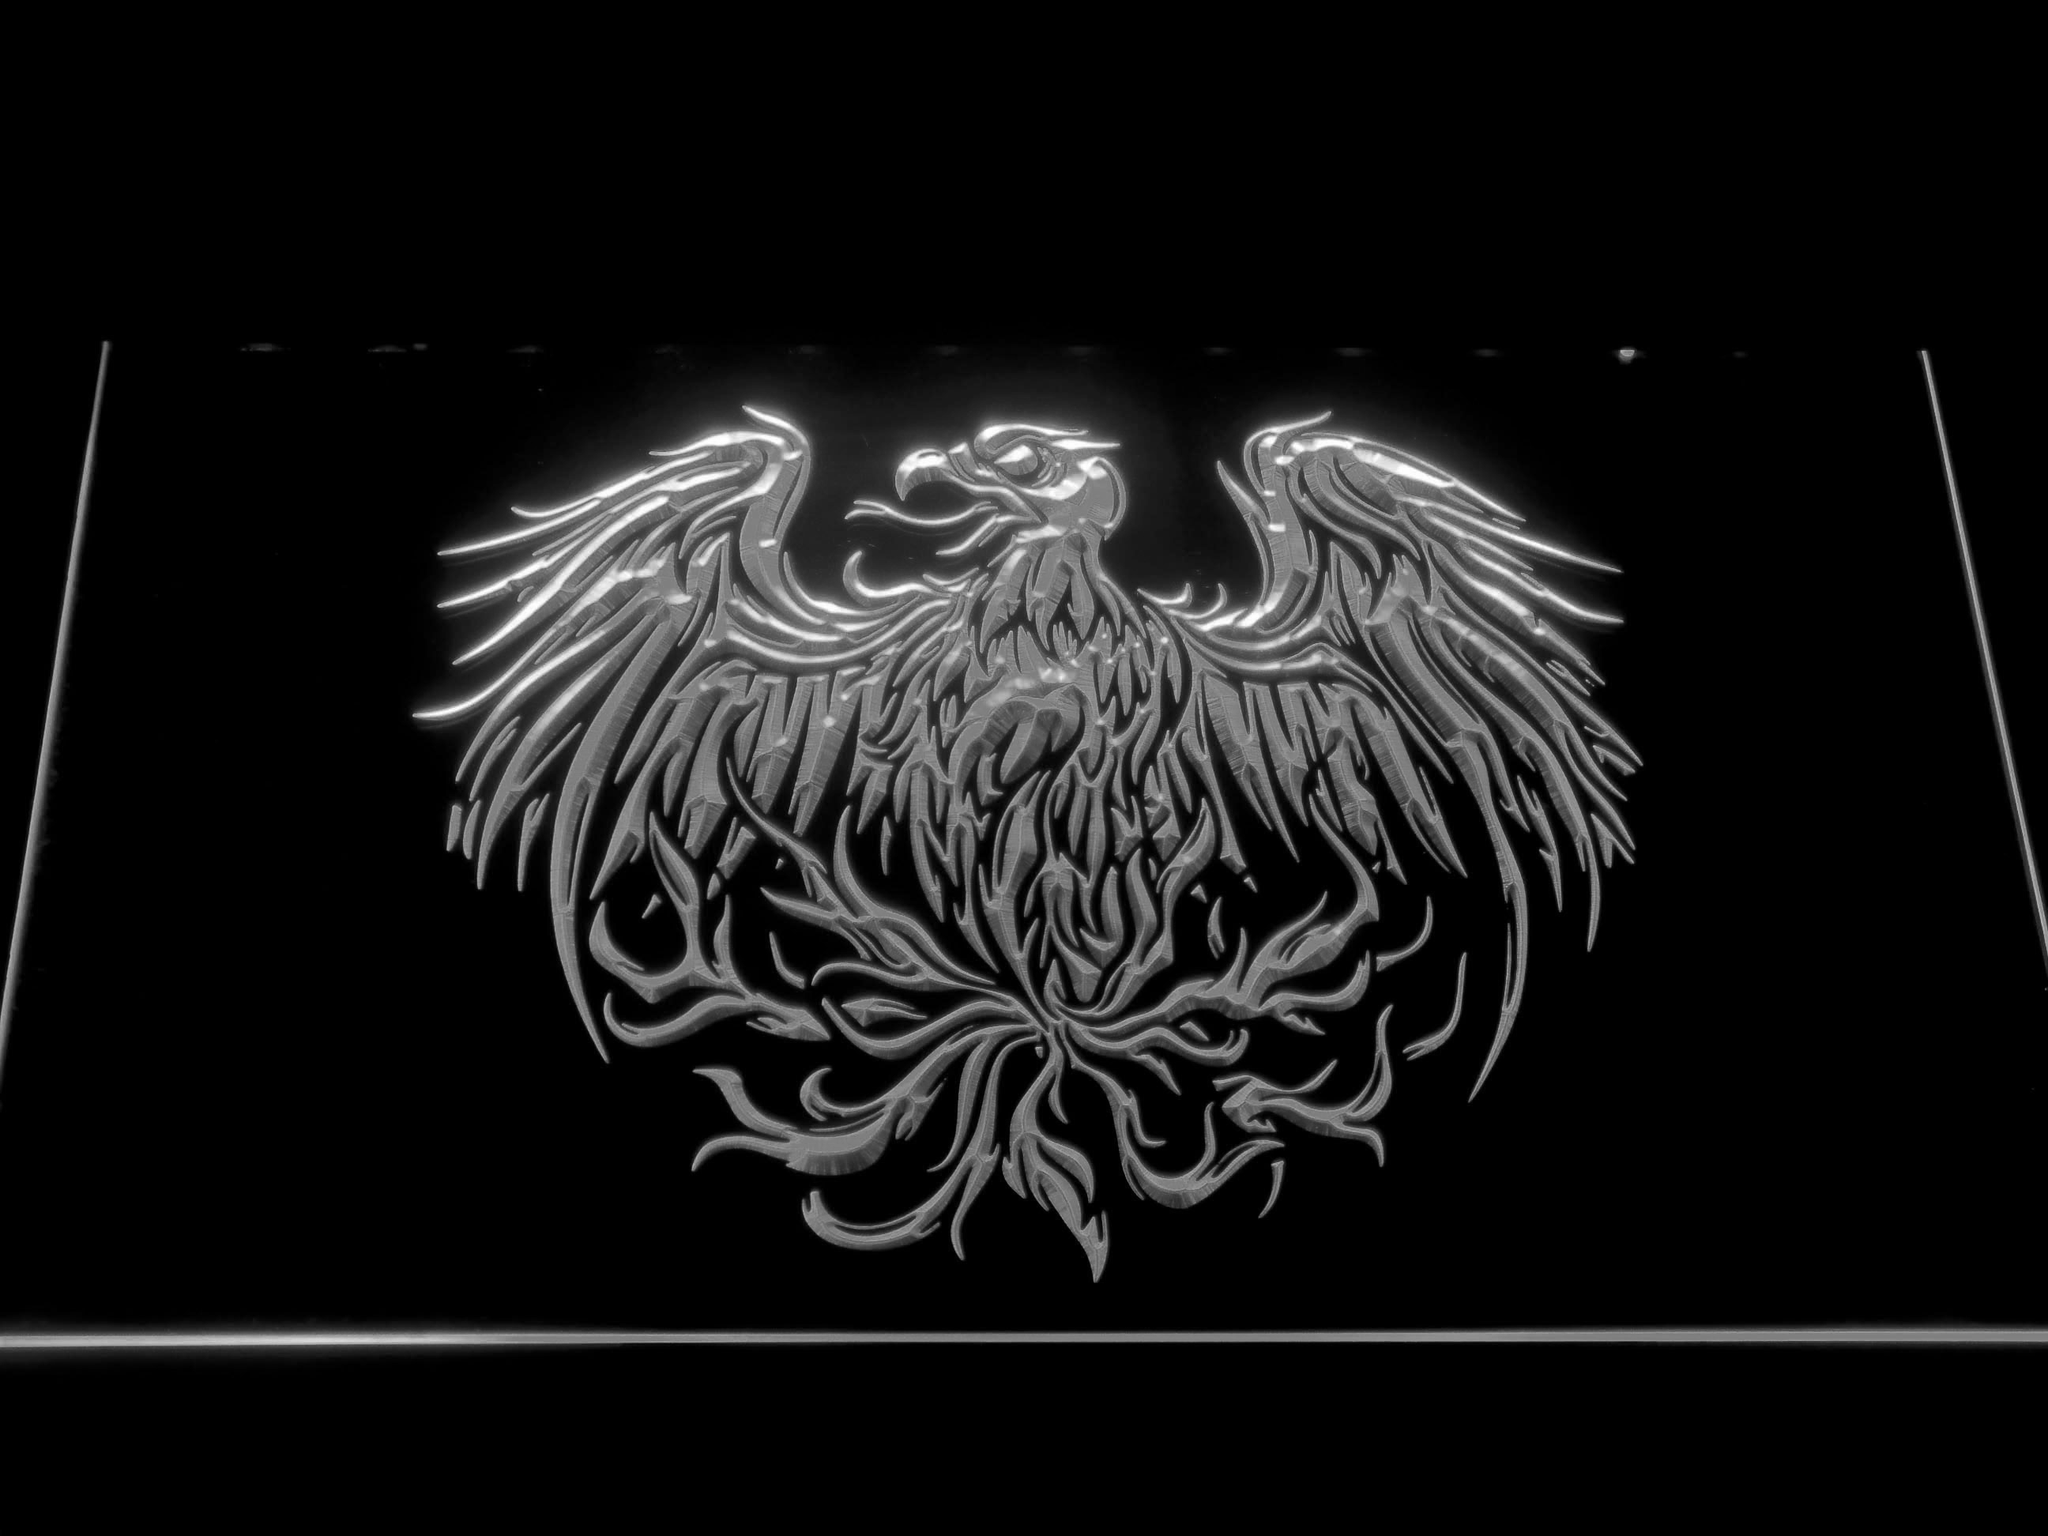 A Day to Remember Eagle LED Neon Sign | SafeSpecial A Day To Remember Golden Eagle